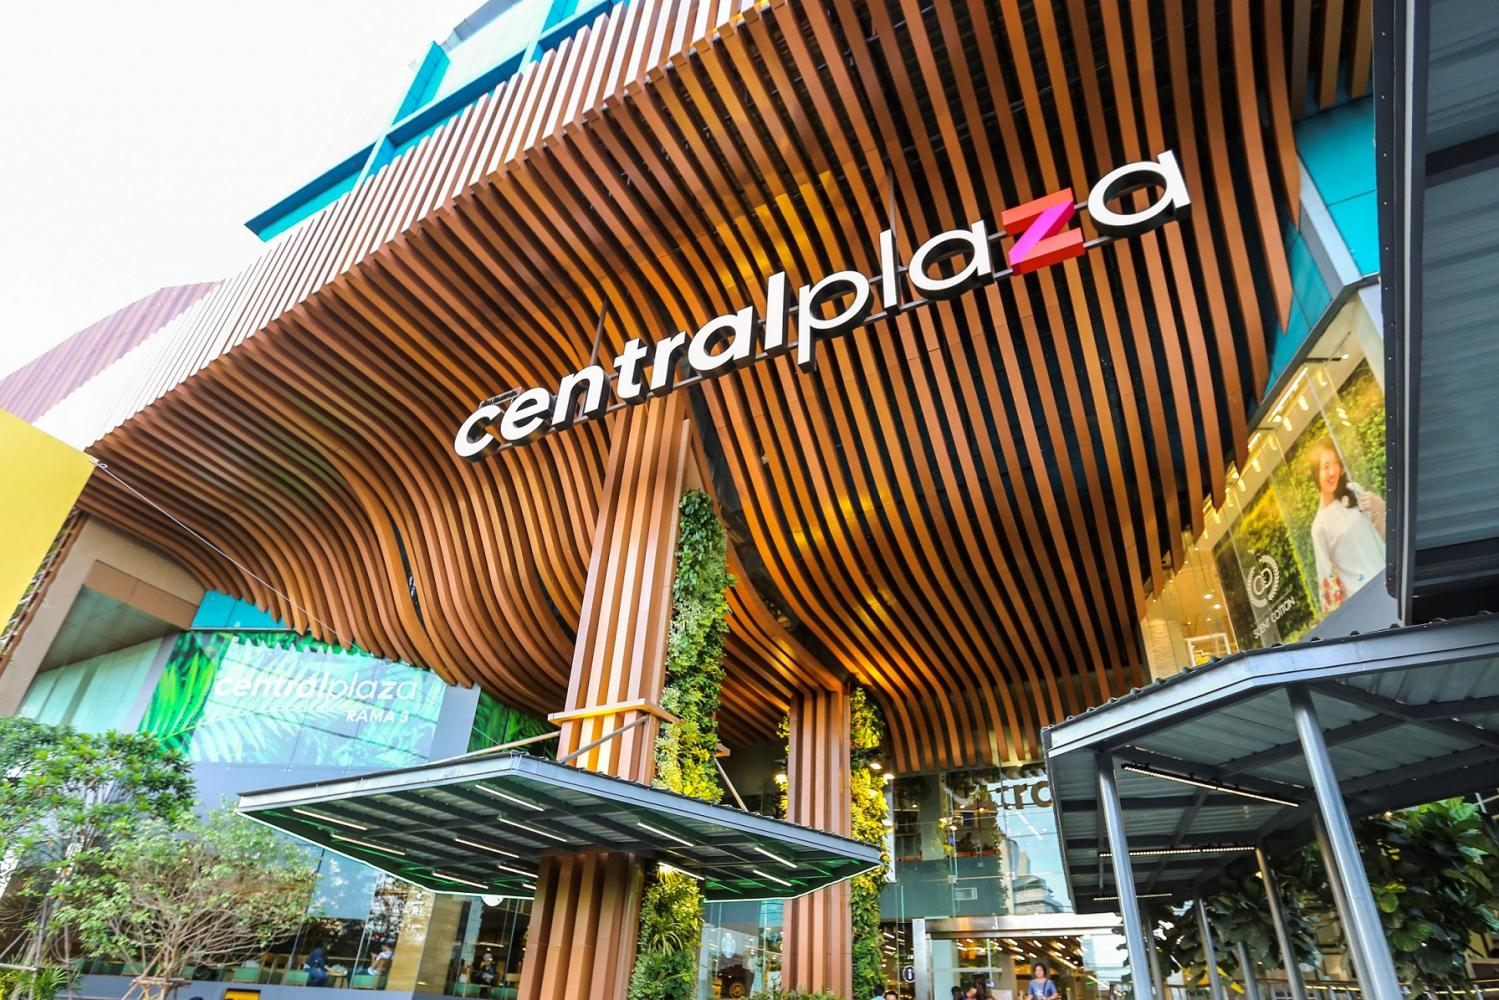 Central Plaza Rama III, one of the retail complexes under CPN. The company operates 34 shopping centres, 33 in Thailand and one in Malaysia.